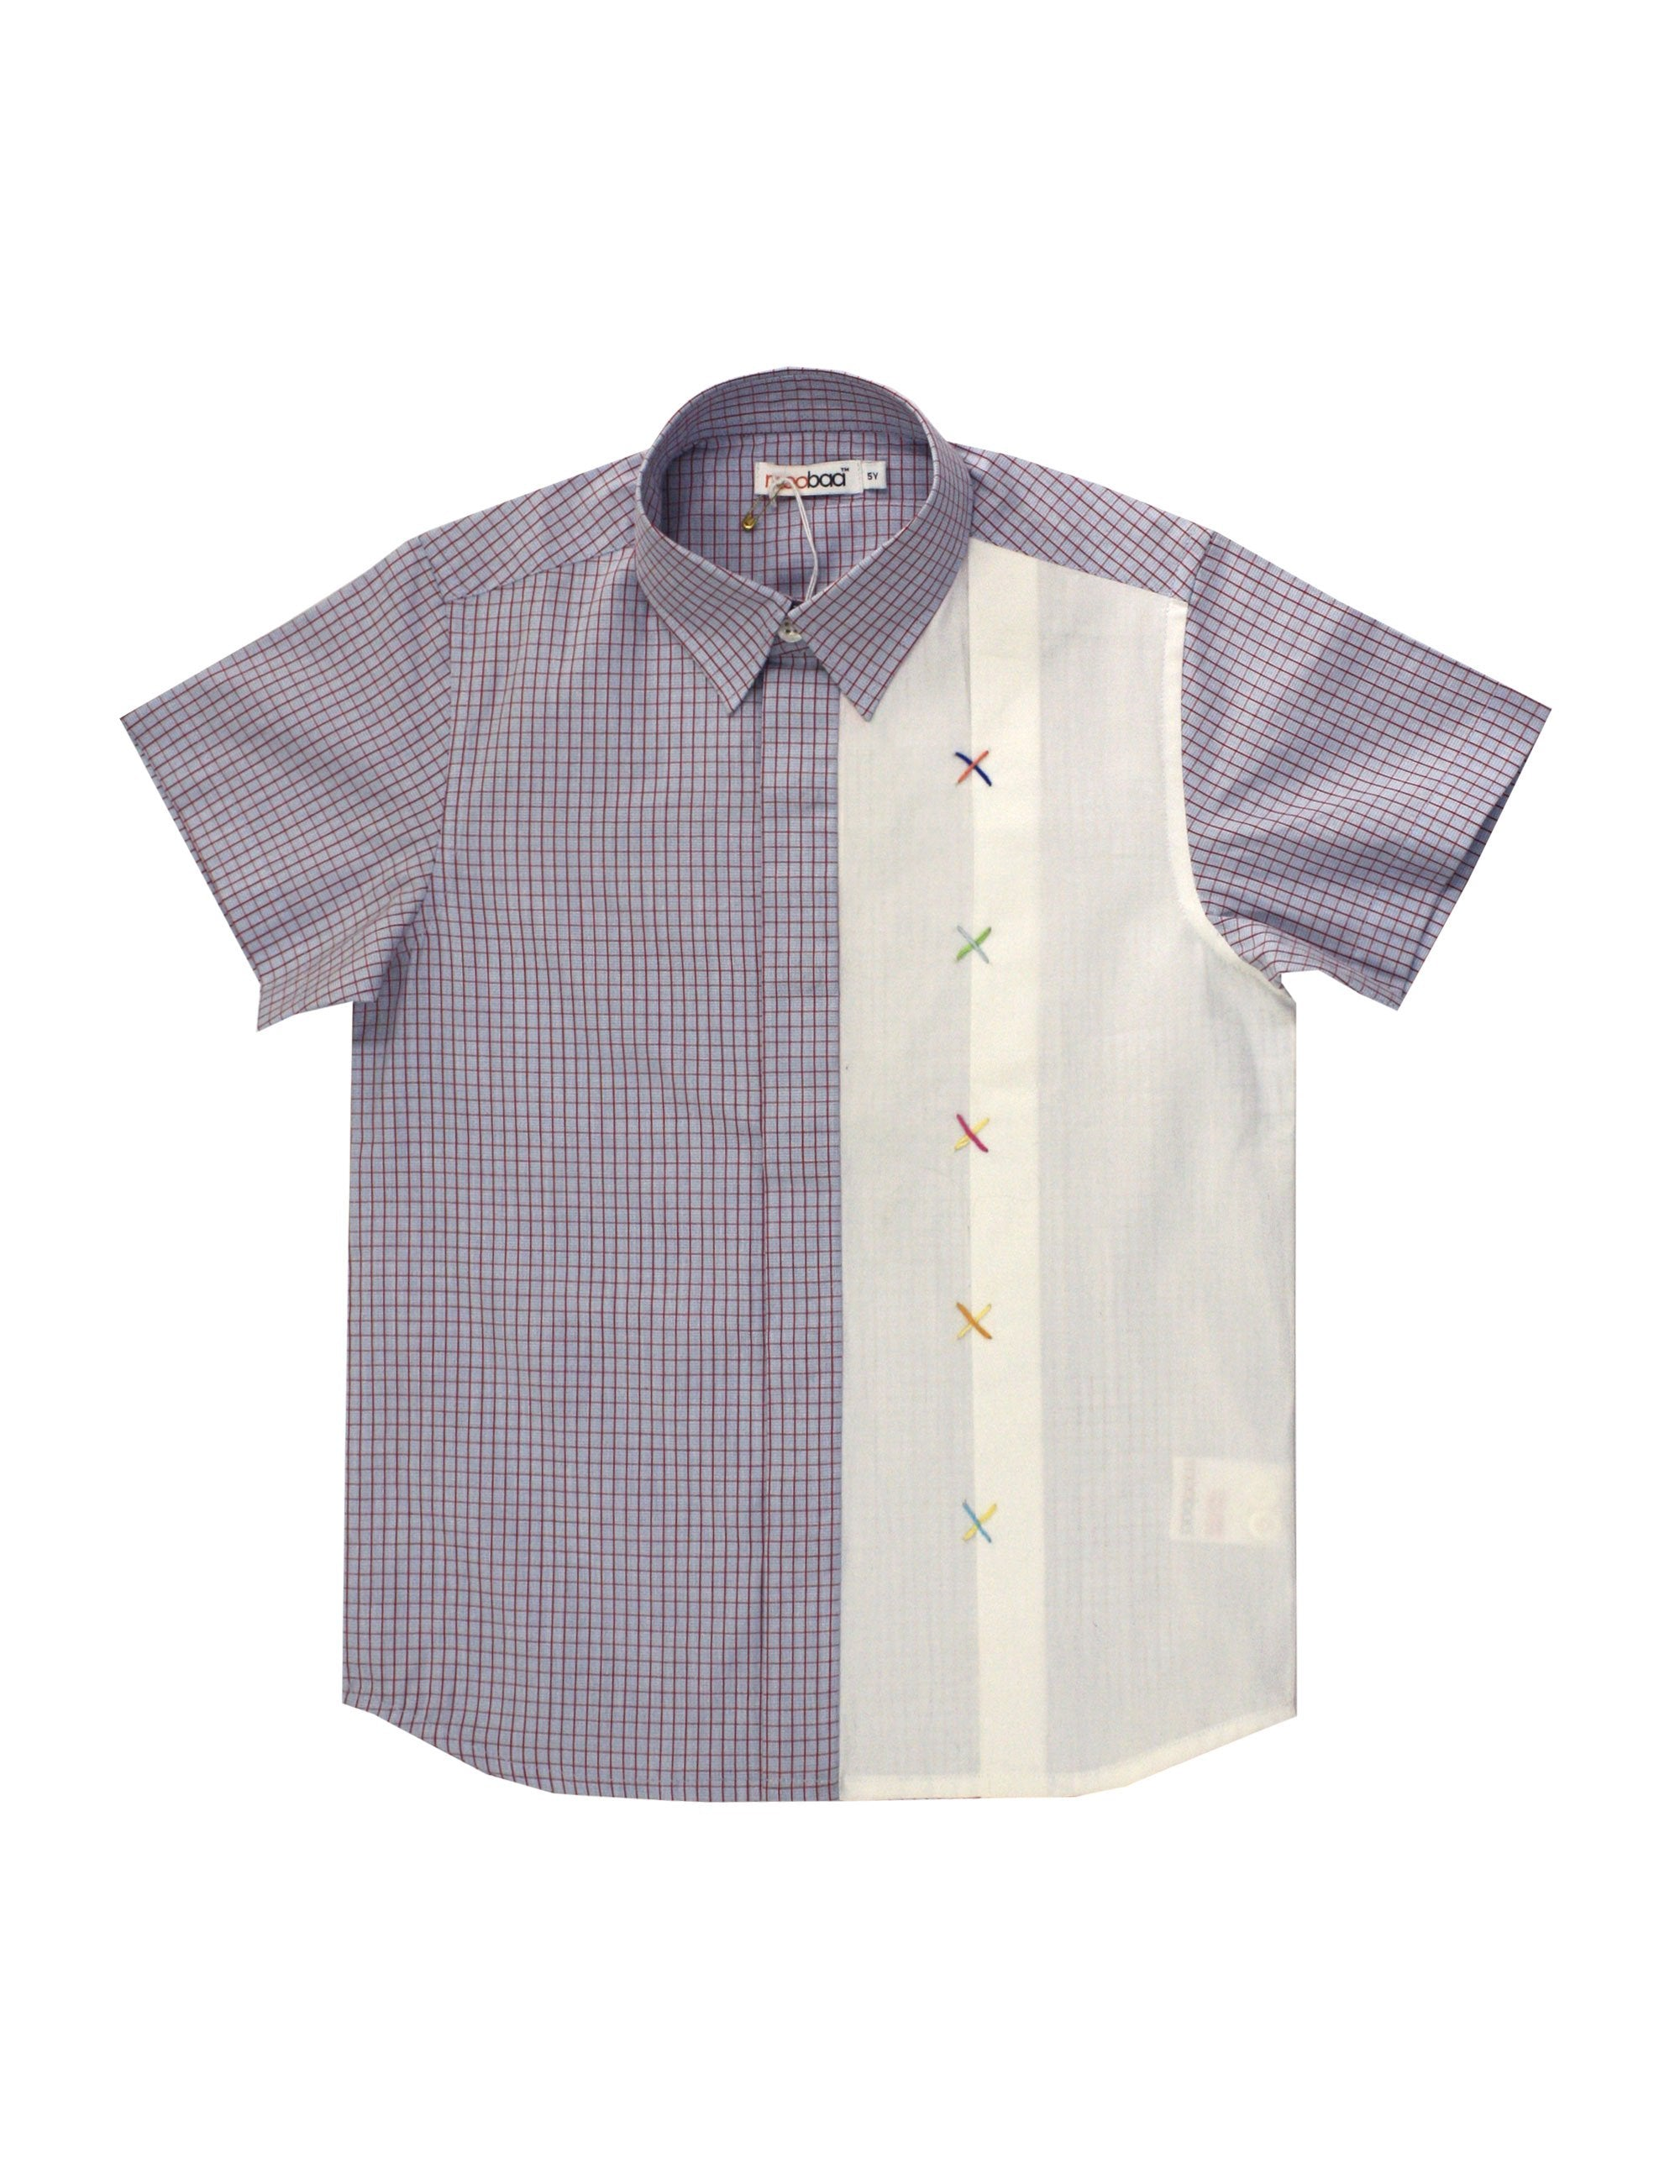 Parker Shirt in Purple Colour for Boys